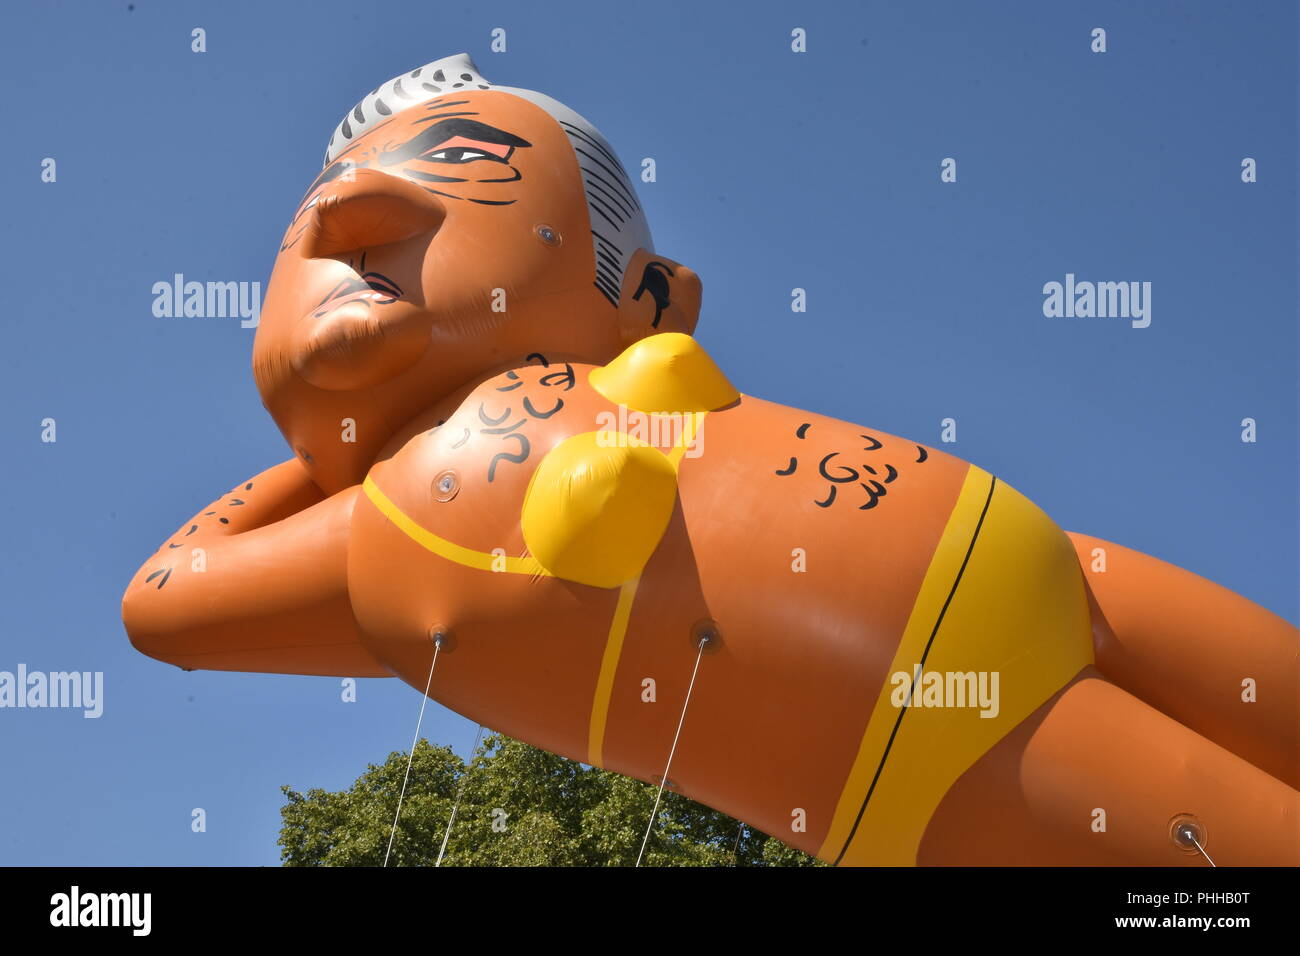 London, UK. 1st September, 2018. Make London Safe Again Campaigners flew a 29ft balloon of Sadiq Khan wearing a bikini to mark the fight back against rising knife crime amid the lack of action from the London Mayor,Parliament Square,London.UK Credit: michael melia/Alamy Live News Stock Photo